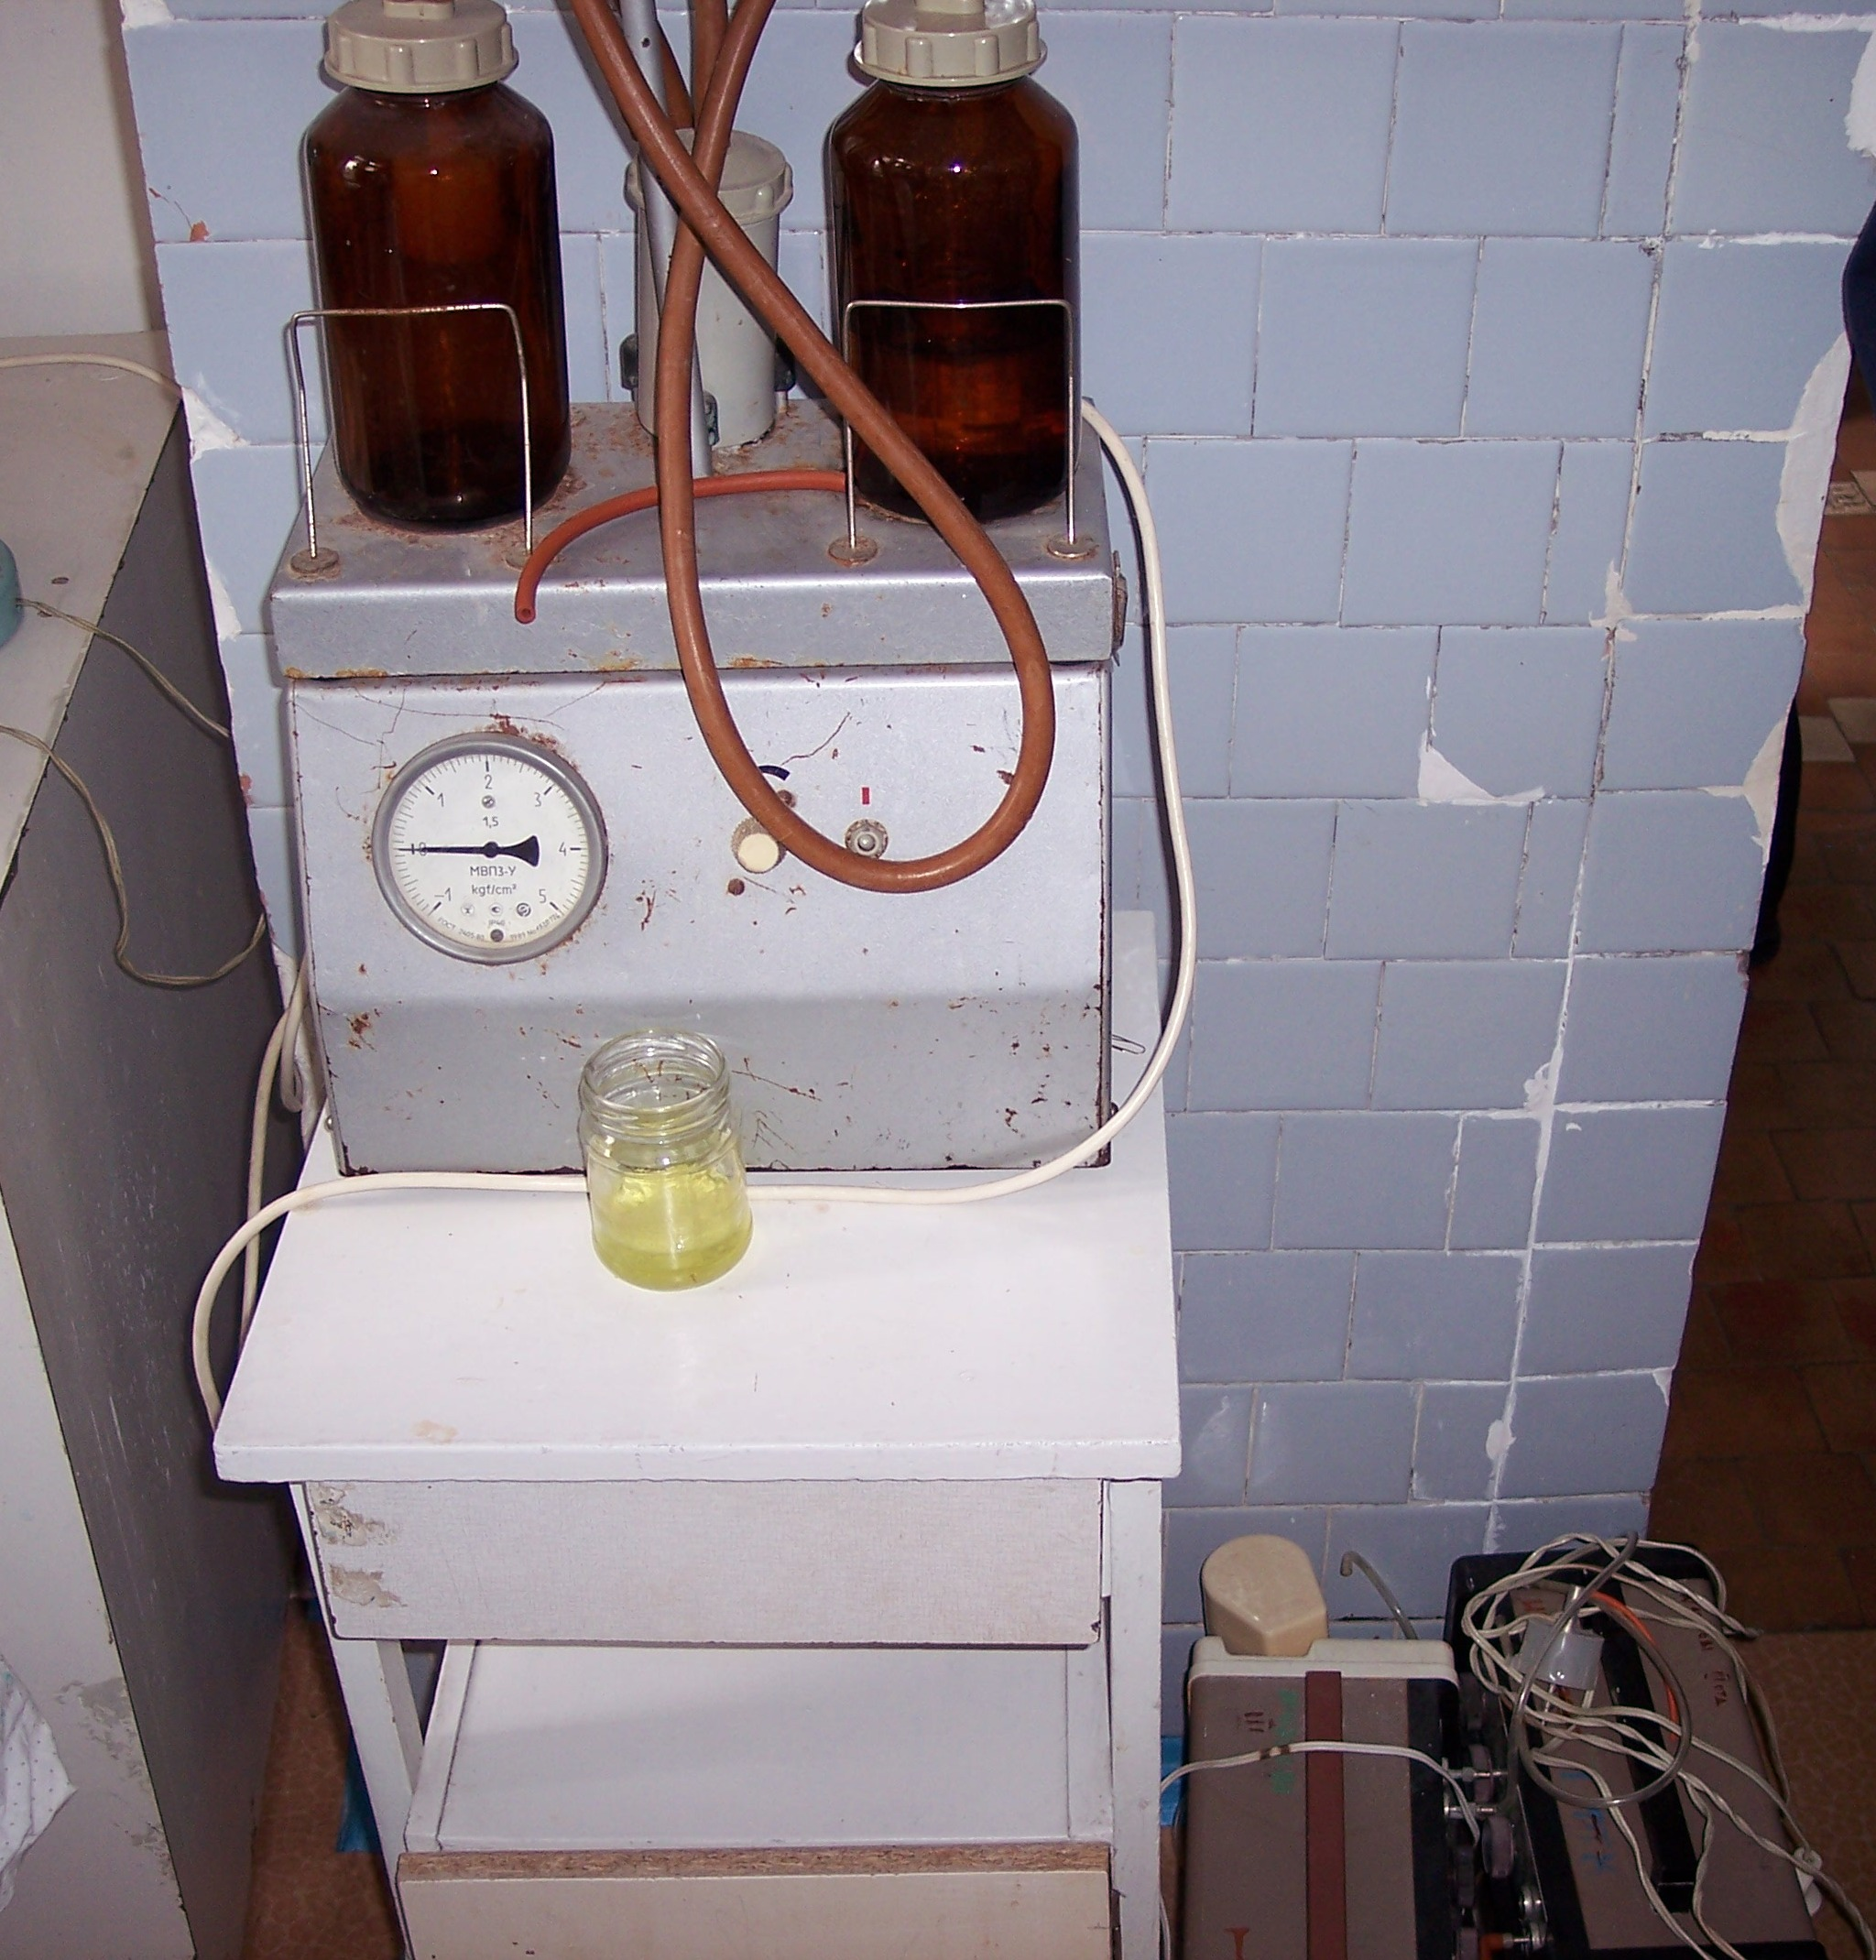 breathing treatment machine for